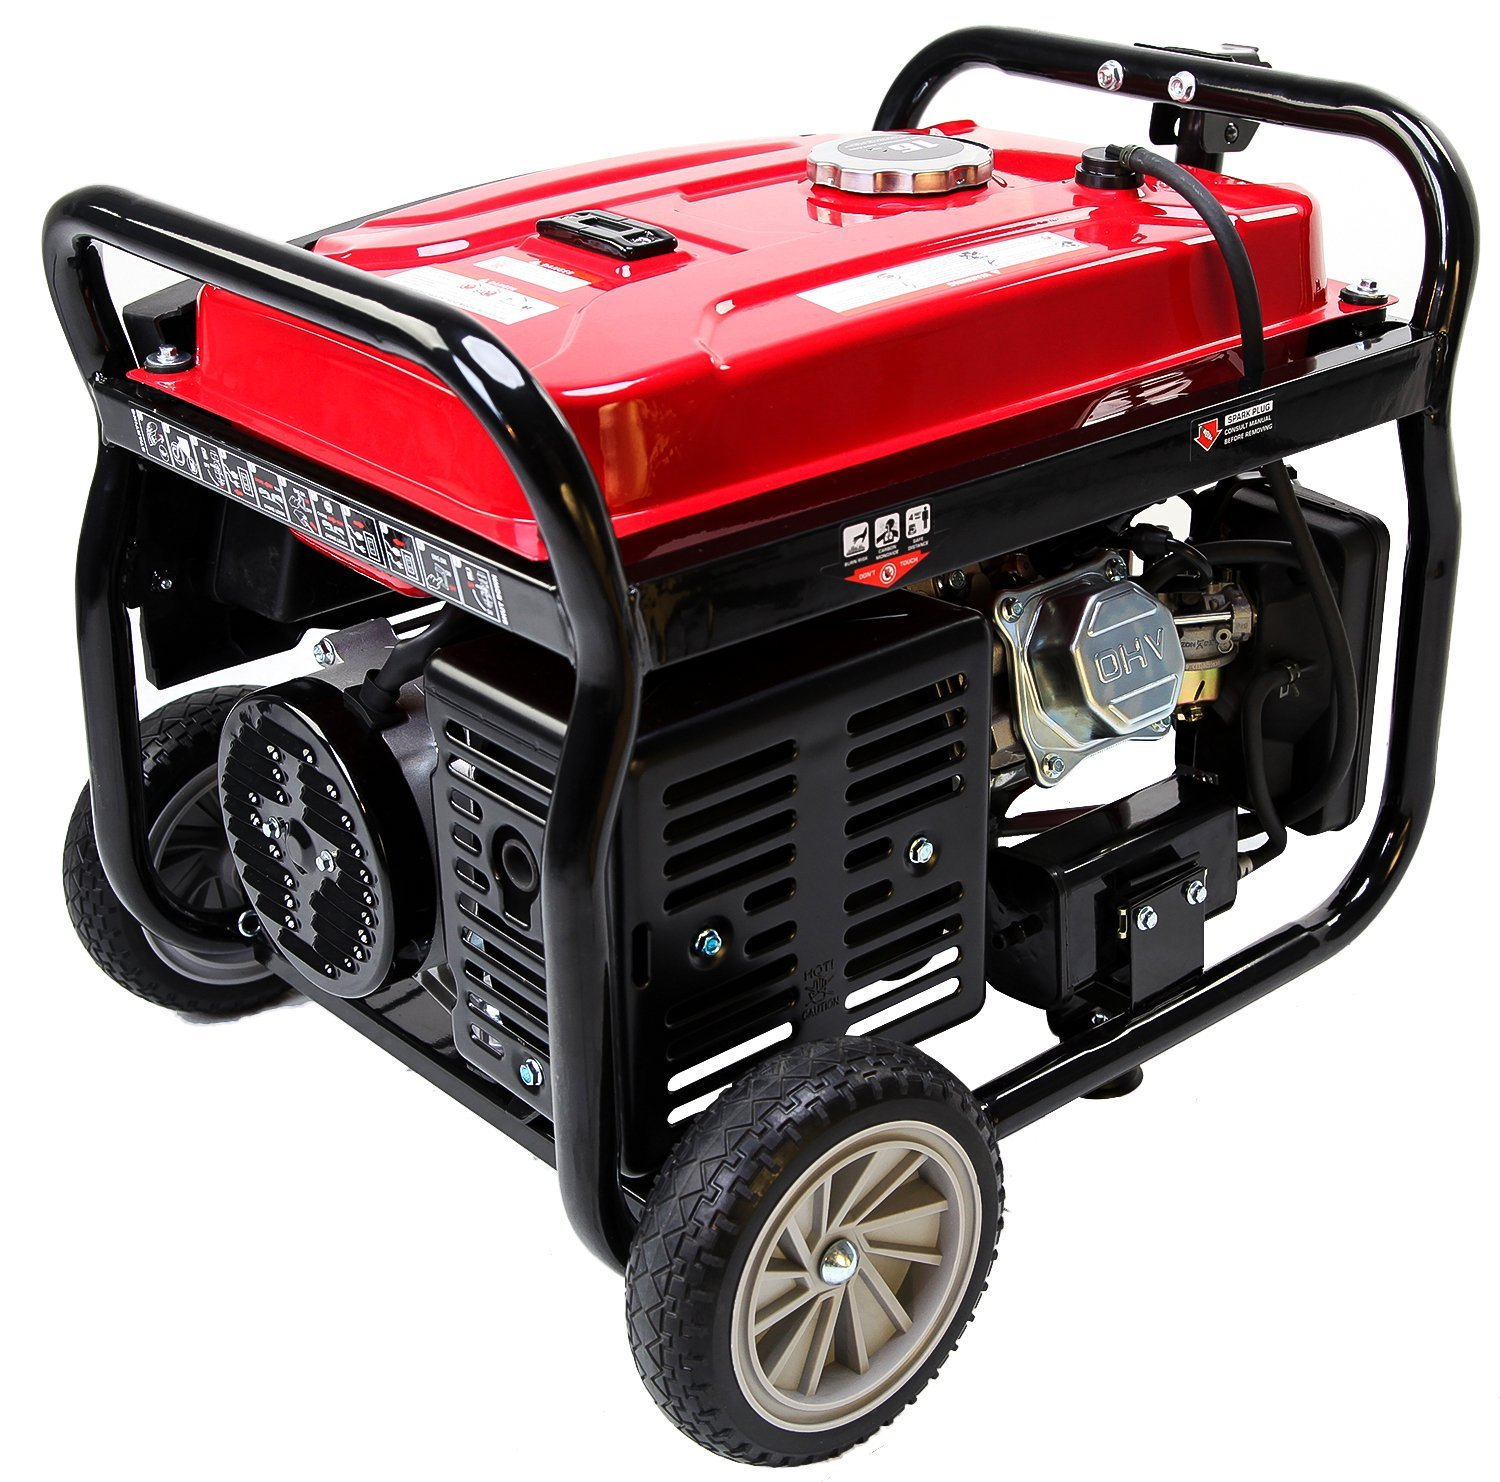 Merax 4050-Watt 7.0 HP OHV 4 Gallon Gas Powered Portable Generator